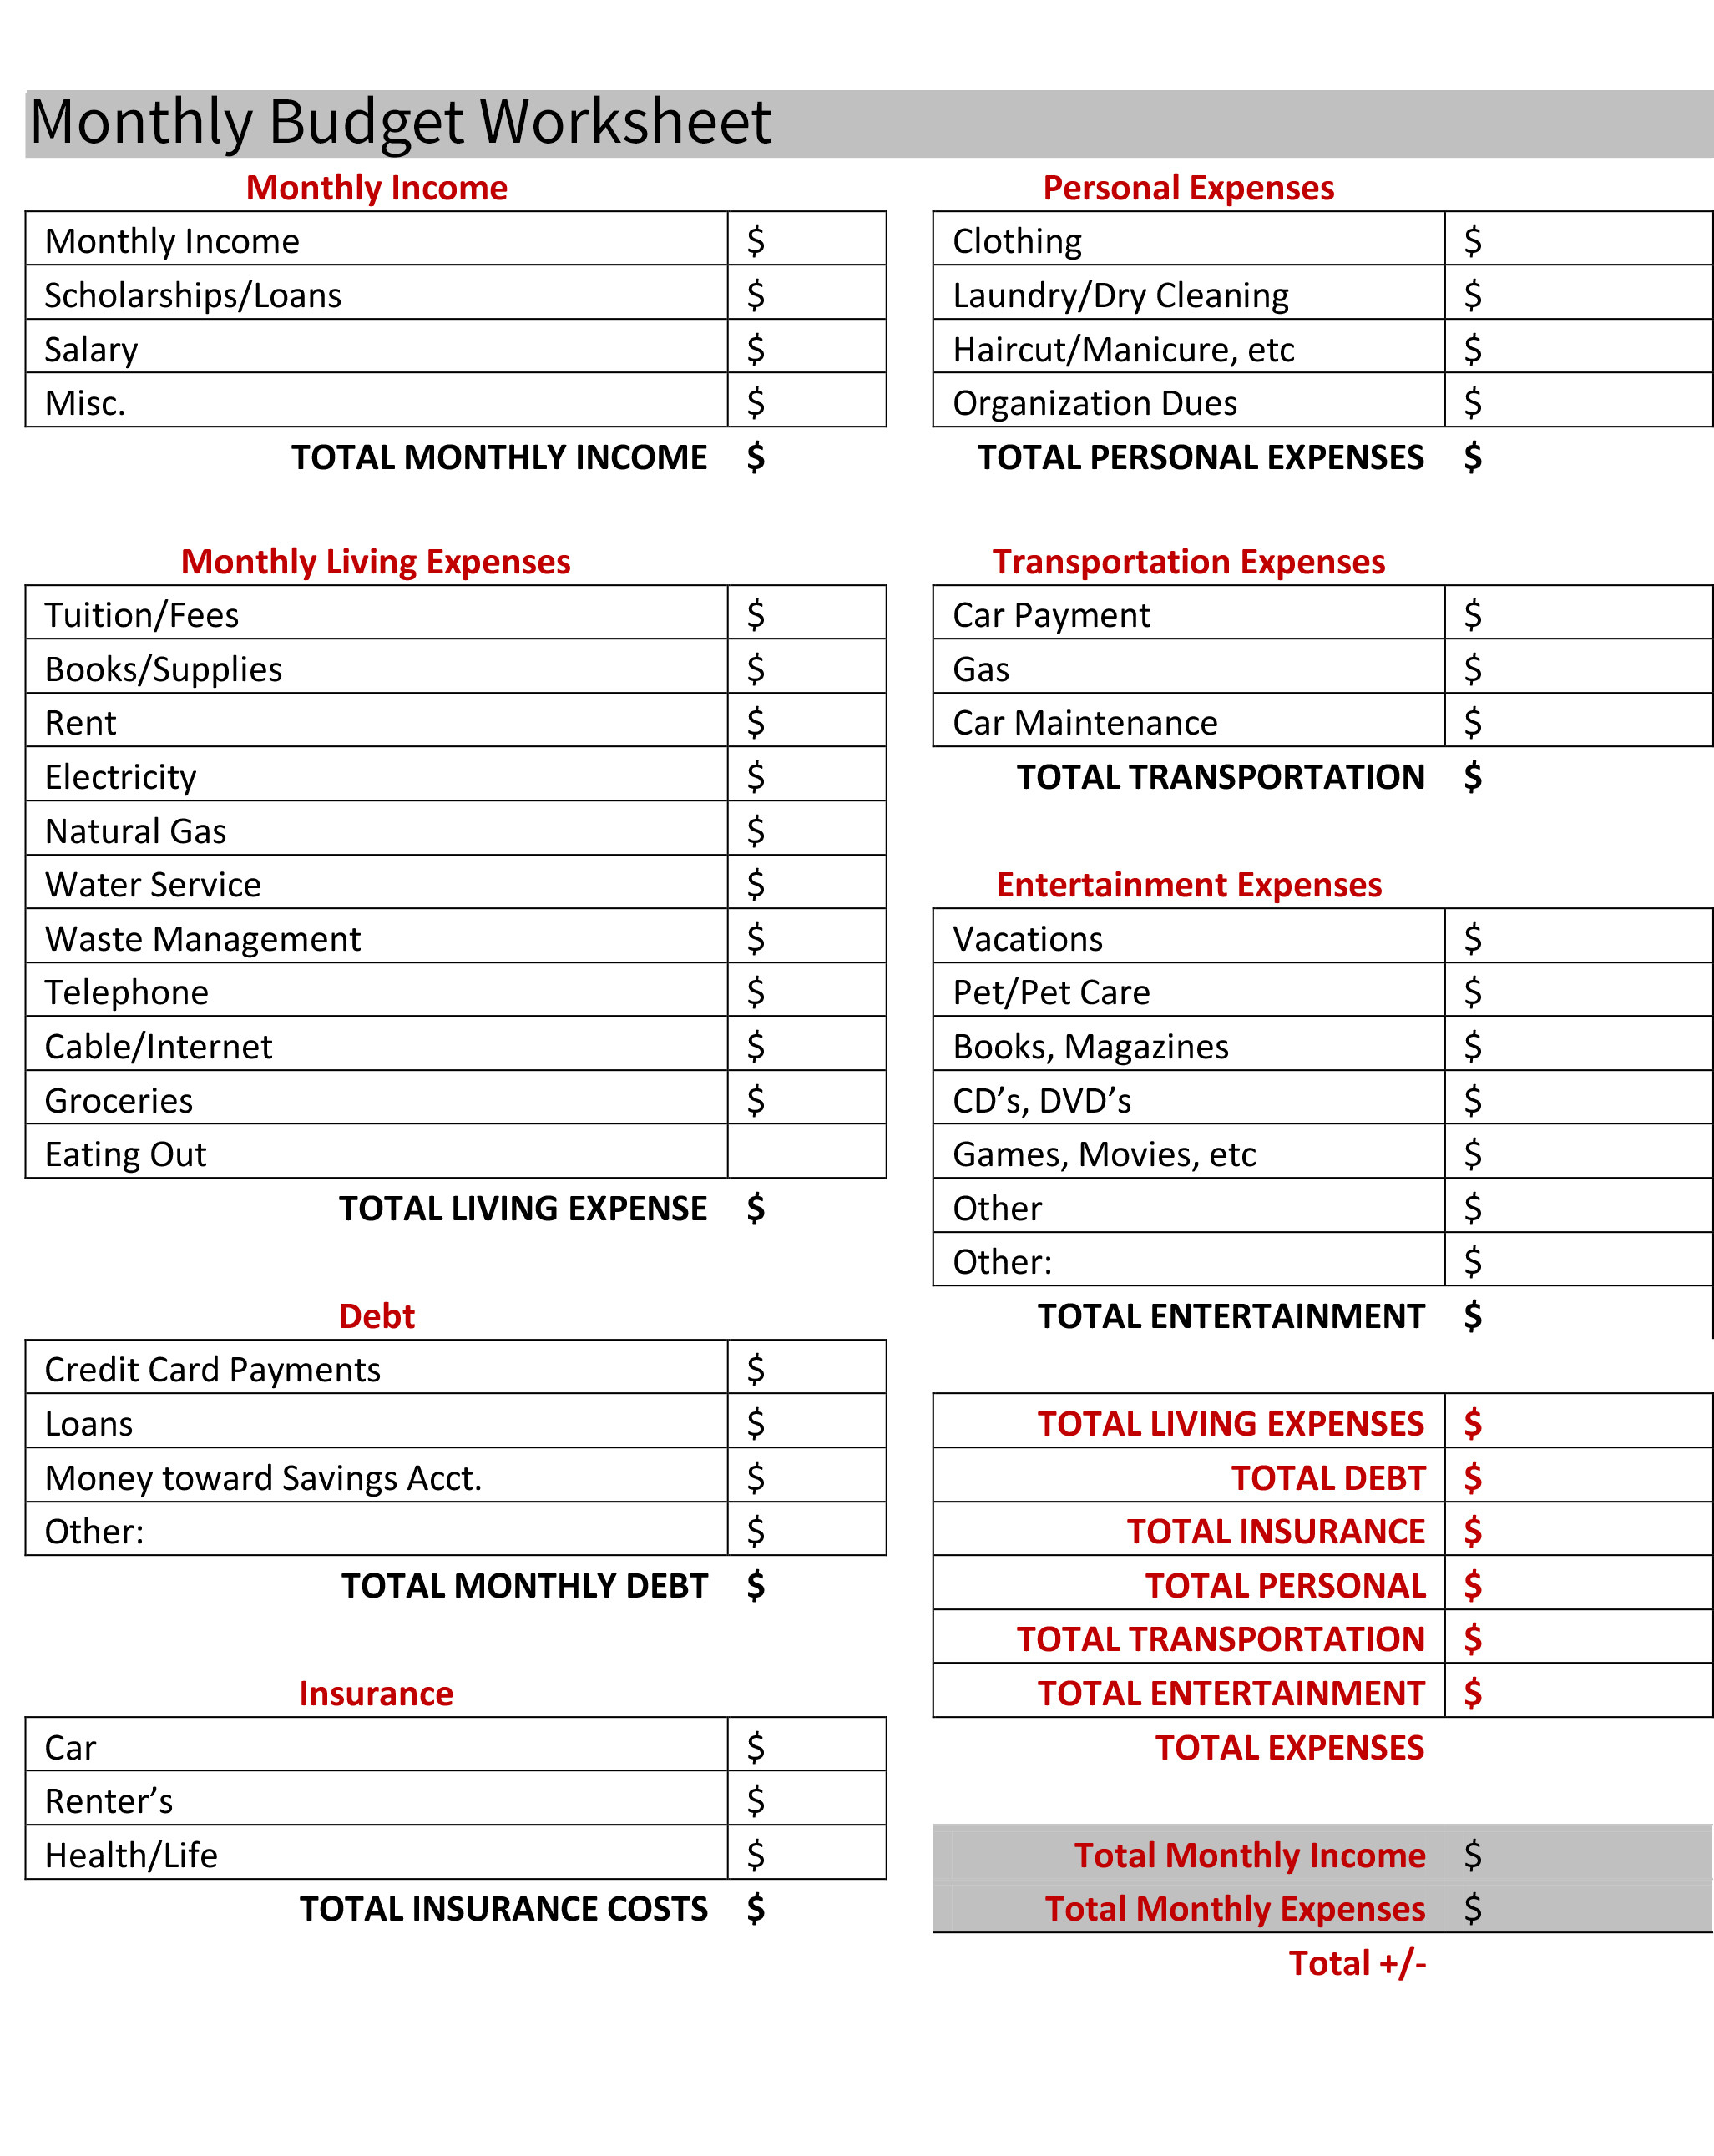 Payroll Allocation Spreadsheet Throughout Dave Ramsey Budget Spreadsheet Fresh Spreadsheet Examples Payroll